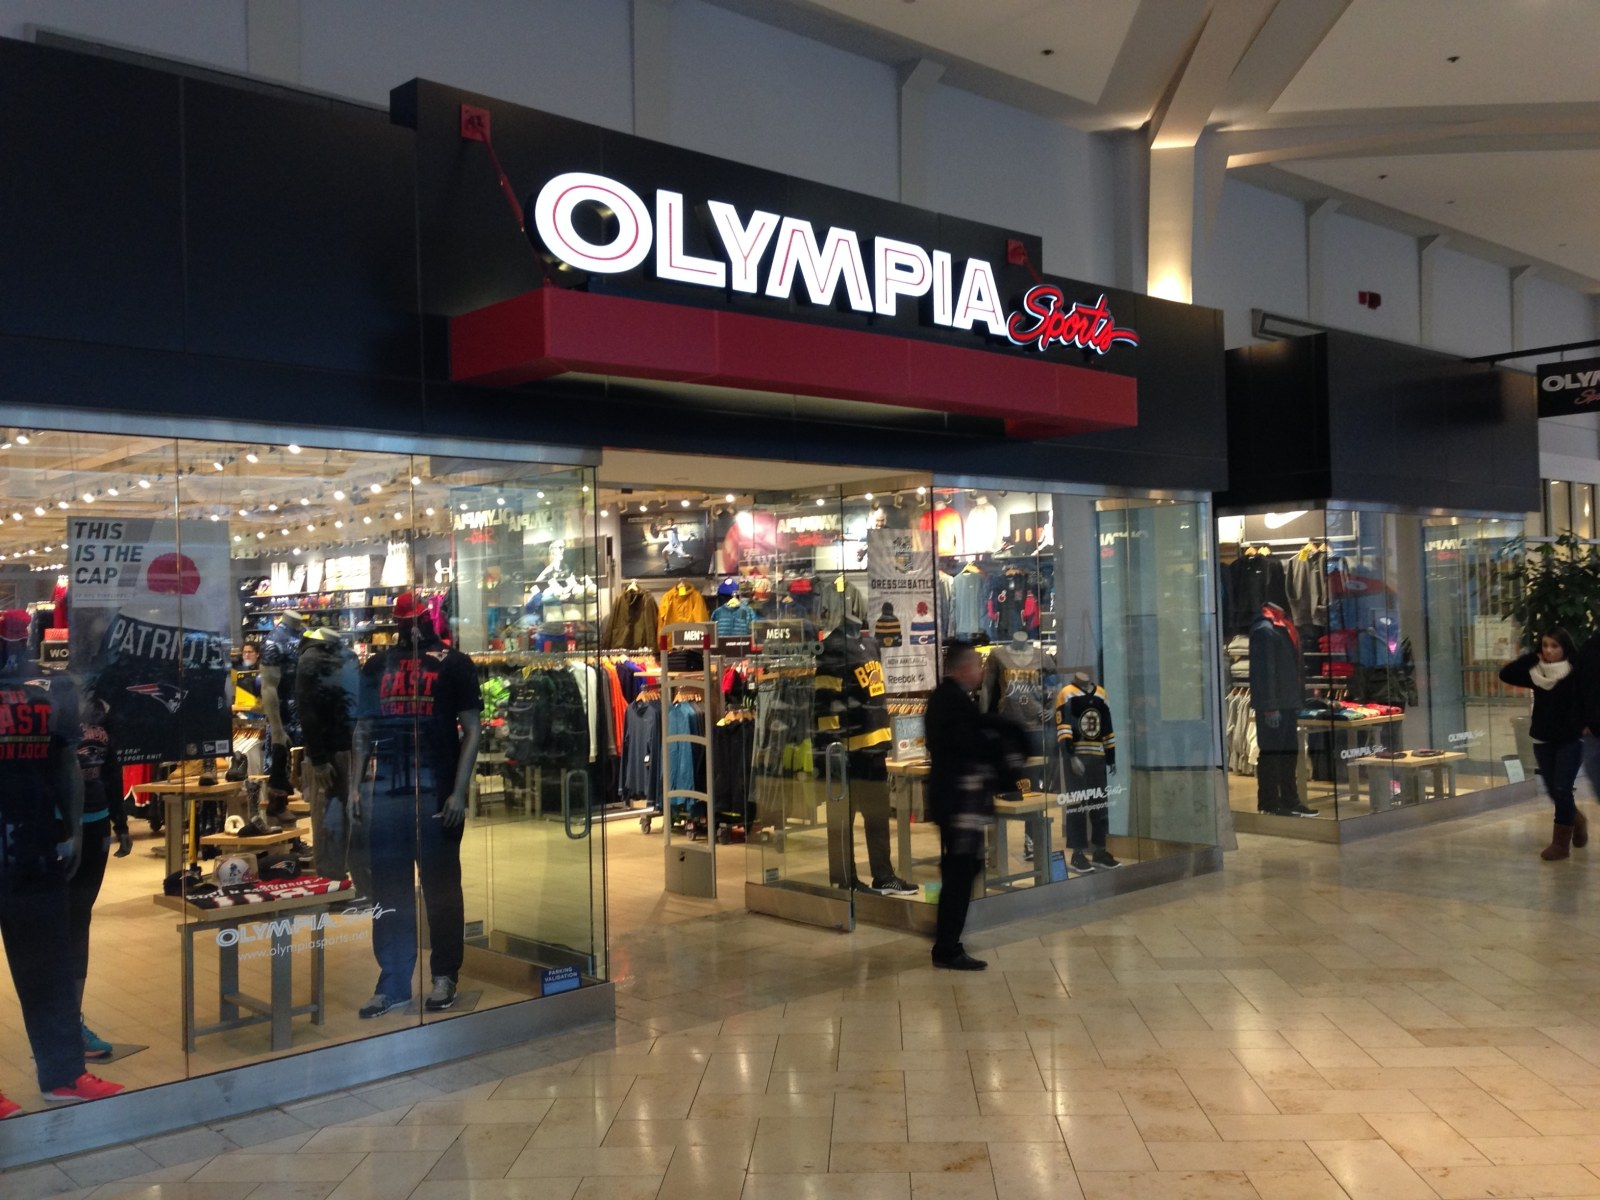 Skip the sports superstores, Olympus is a jam-packed local sports store that stocks all the essential paraphernalia from soccer boots to squash eye shields to those funny little ball-holder things that you stick on your skirt to play tennis.3/5(1).